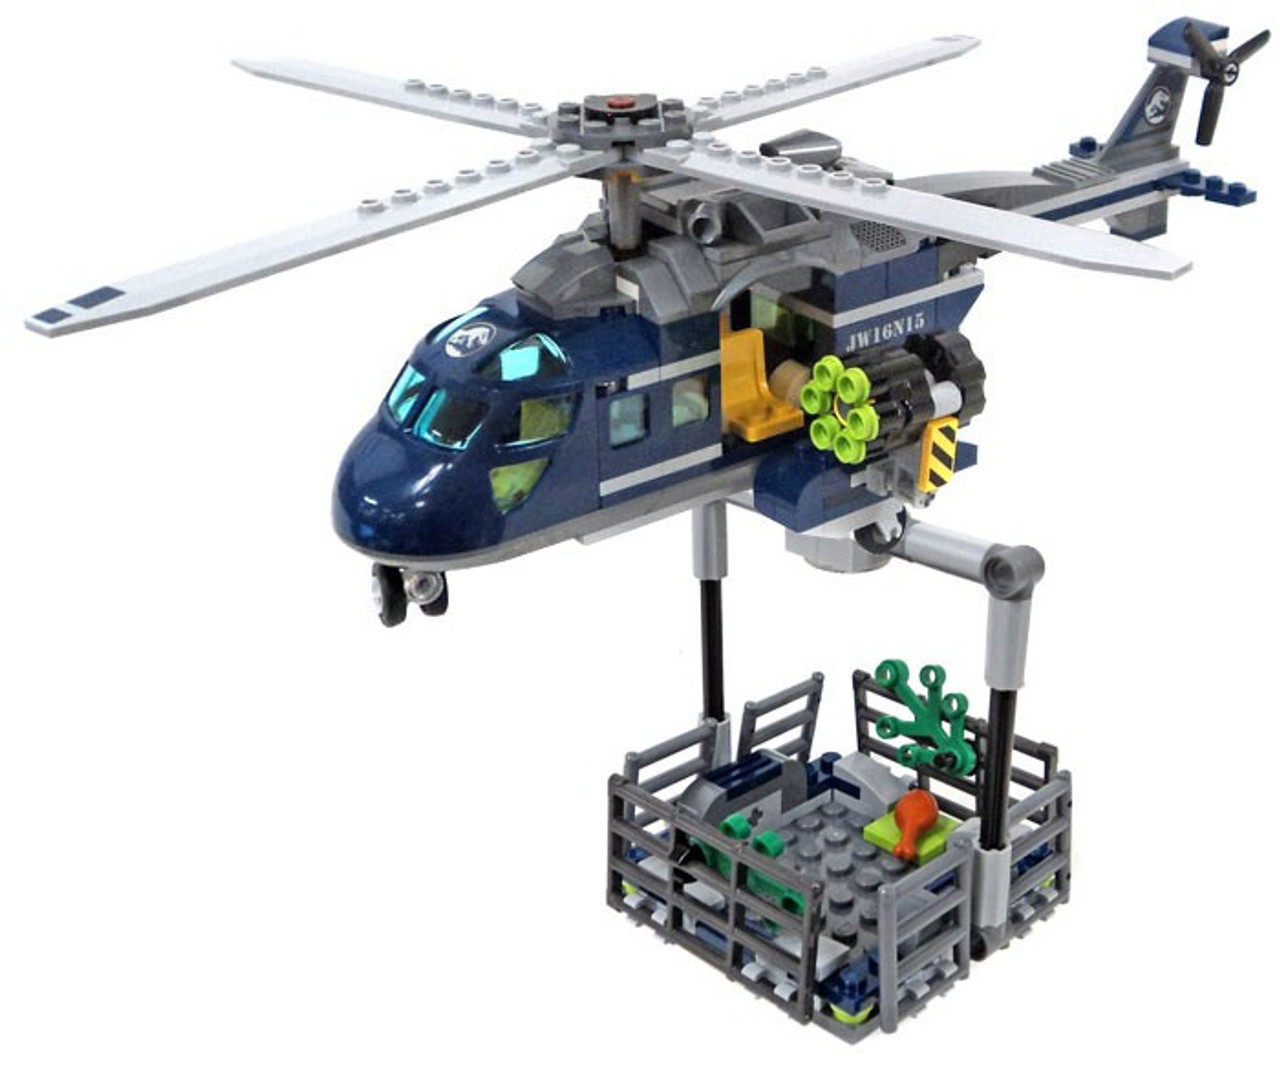 LEGO Jurassic World Fallen Kingdom Helicopter with Trap/Cage [Loose]